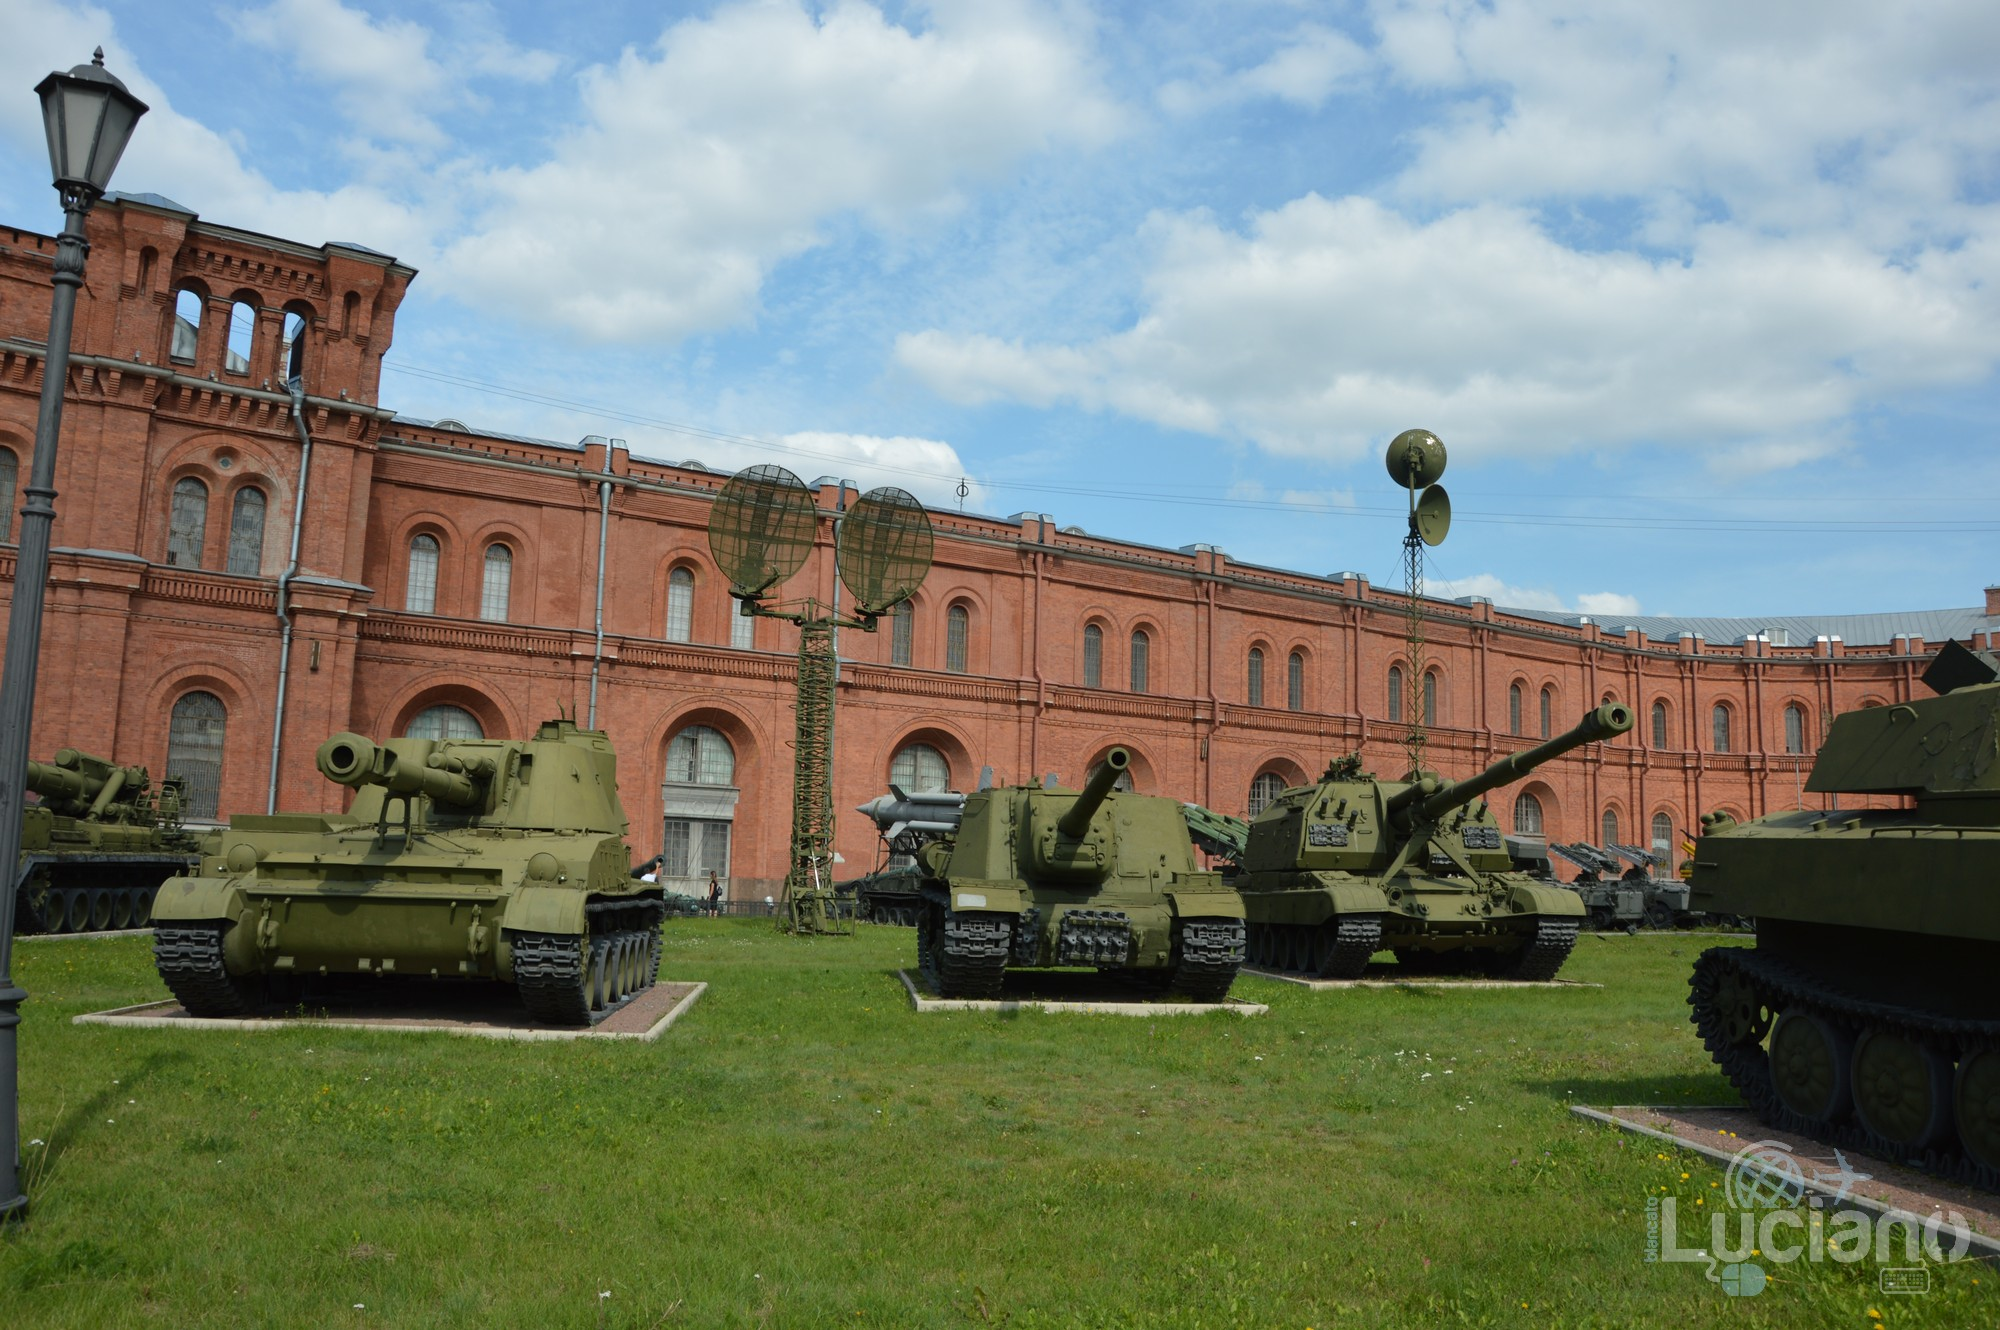 Military-Historical-Museum-of-Artillery-Engineer-and-Signal-Corps-St-Petersburg-Russia-Luciano-Blancato- (66)